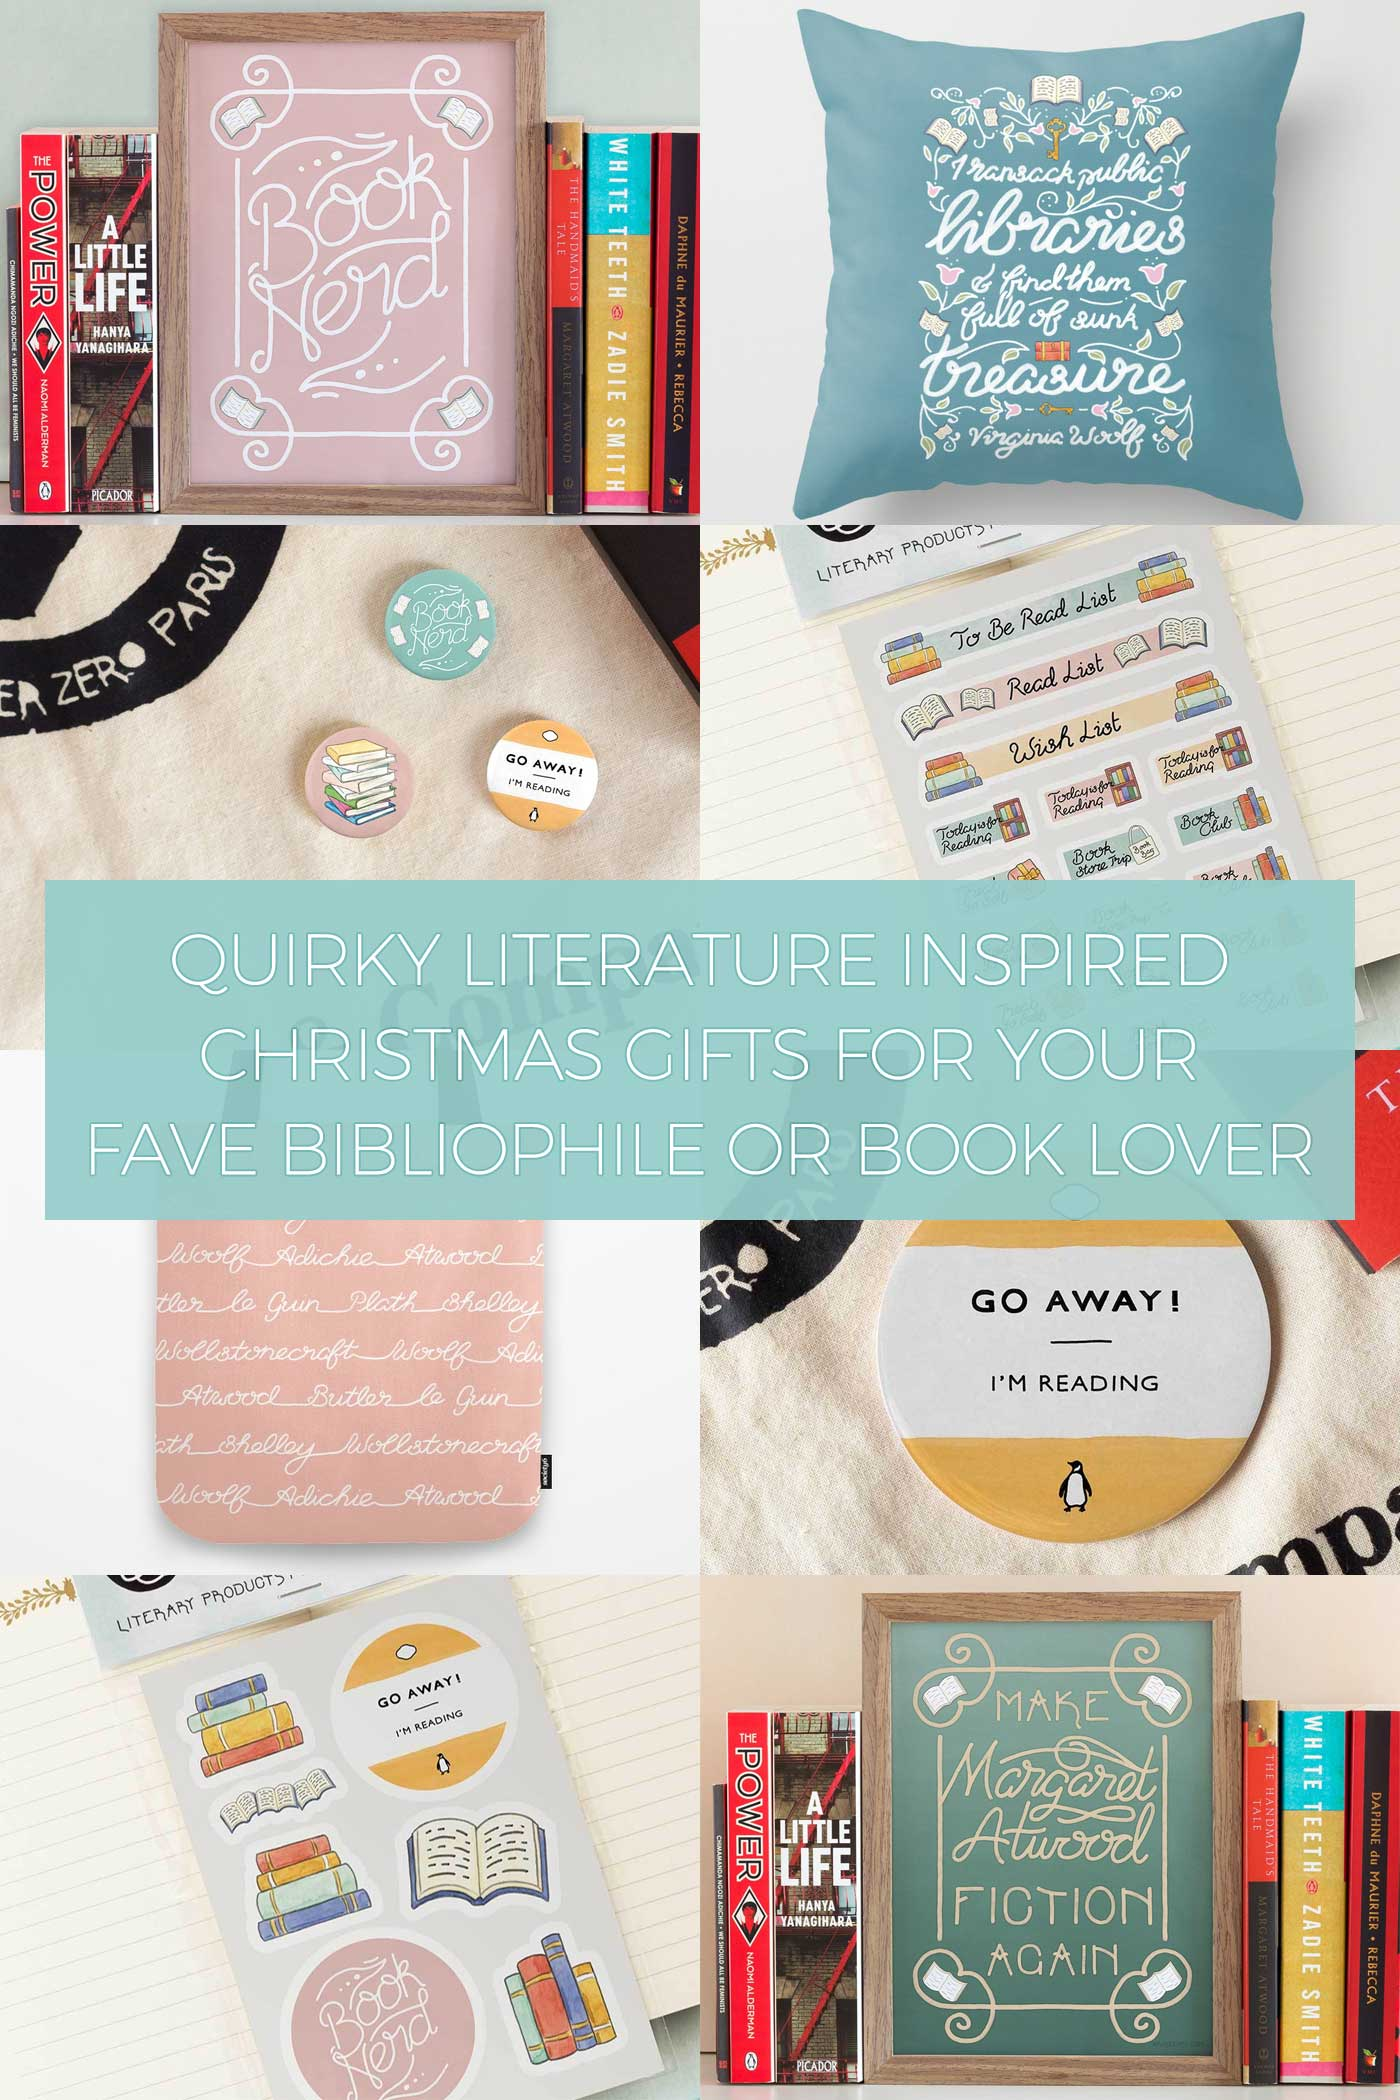 Quirky Literature Inspired Christmas Gifts for your